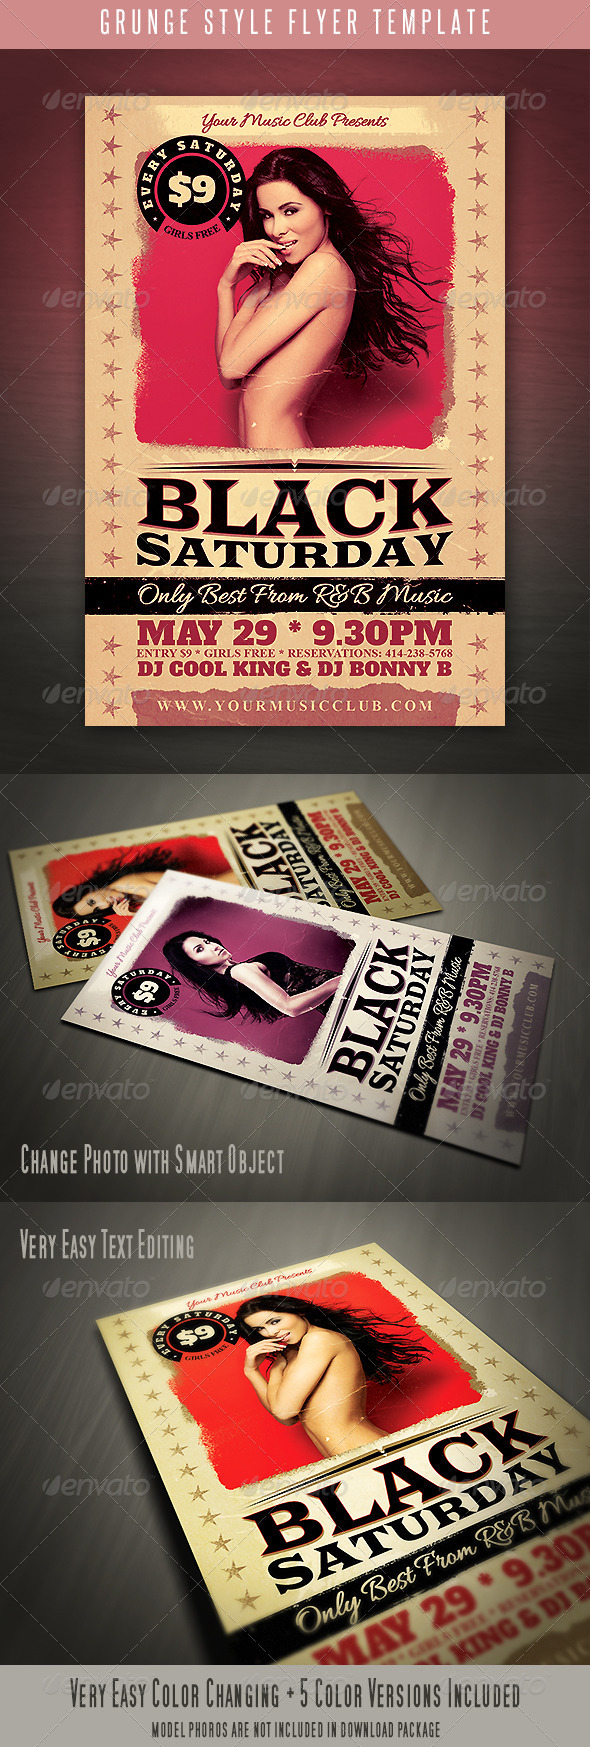 Grunge Style Flyer - Clubs & Parties Events